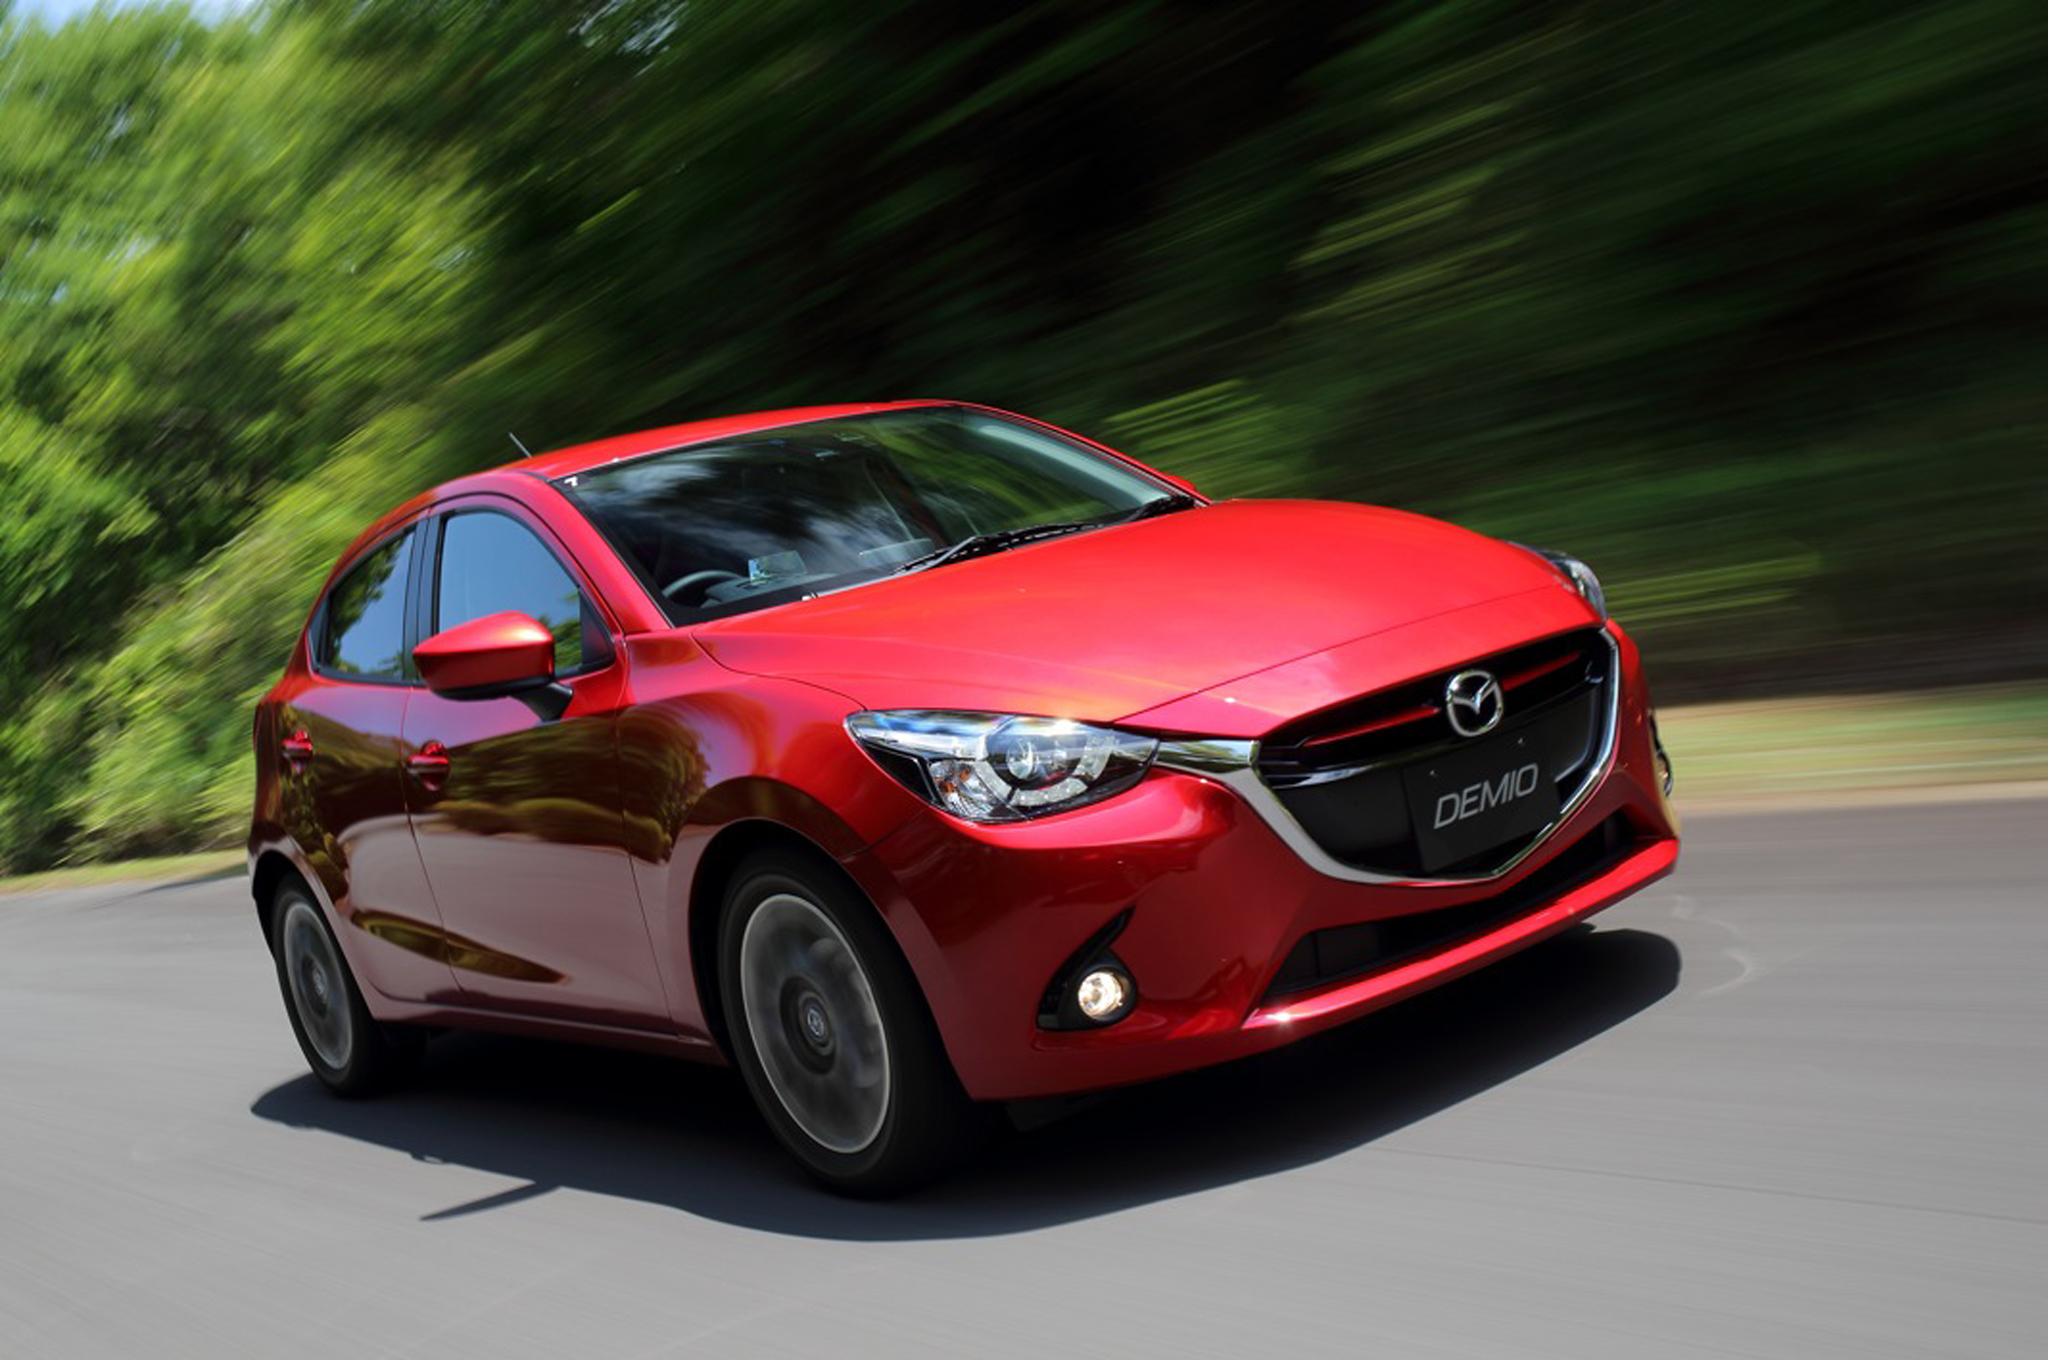 2017 Mazda 3 Review Specs And Release Date >> 2016 Mazda 2 Japanese Specs Performance Test 1500 Cars